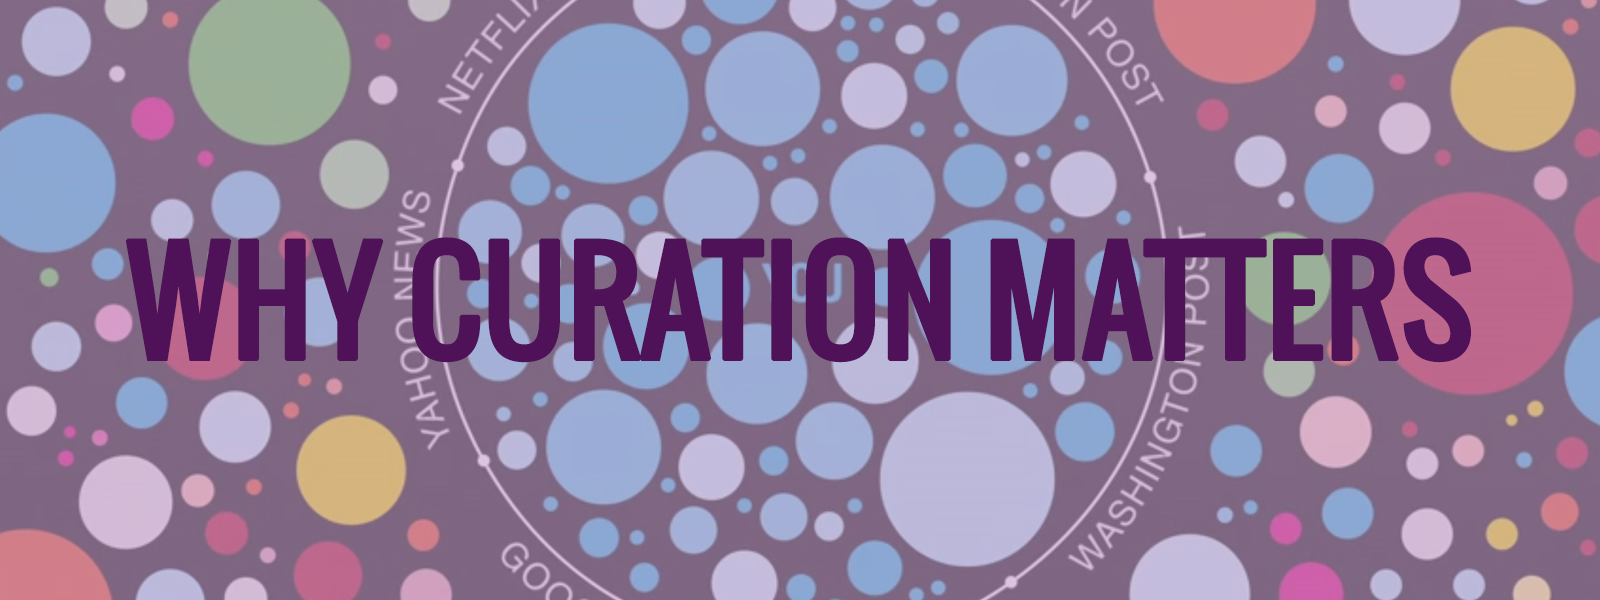 Why Curation Matters